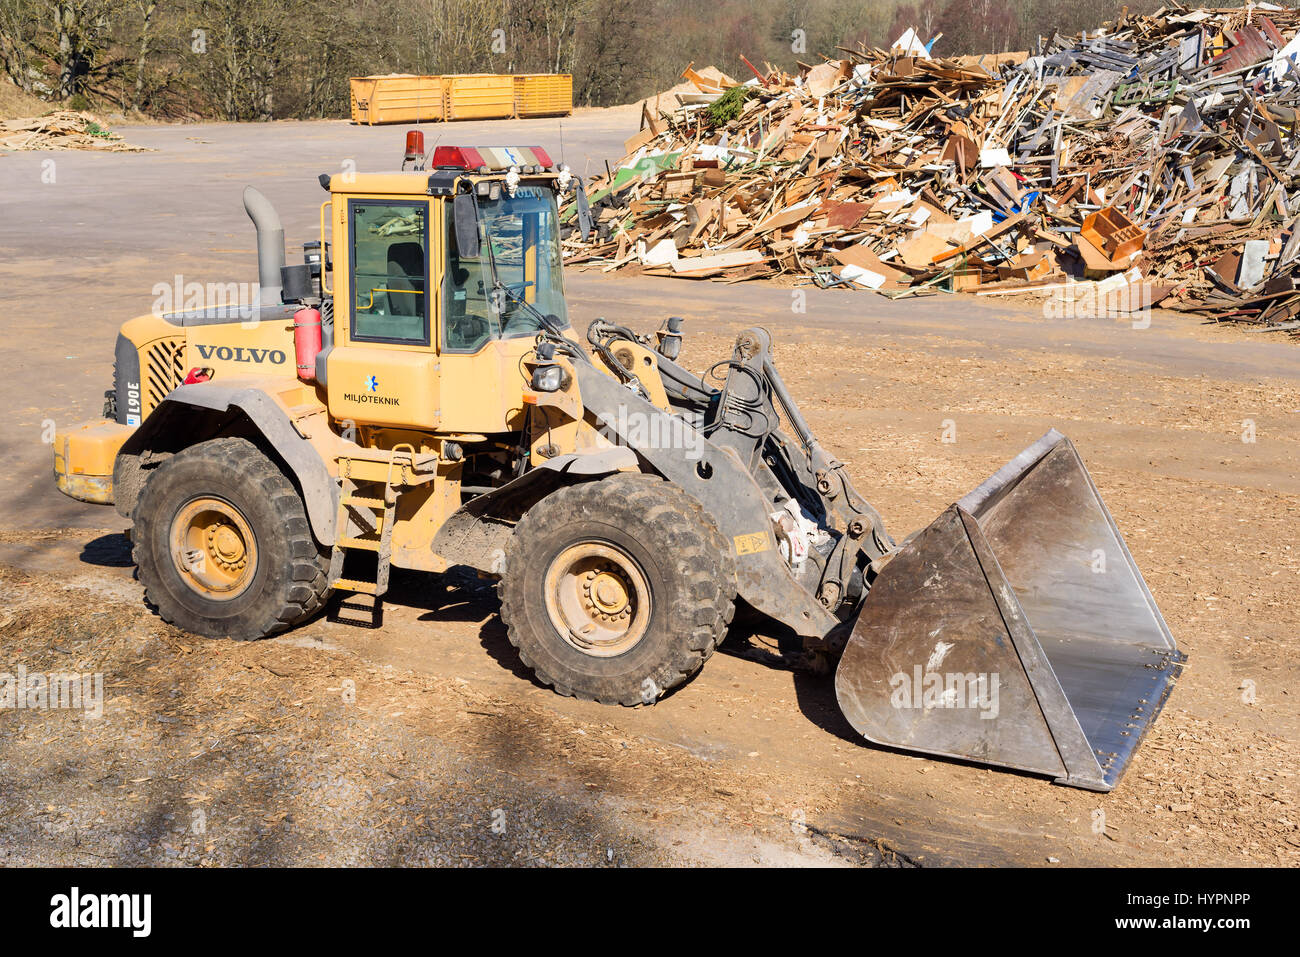 Ronneby, Sweden - March 27, 2017: Documentary of public waste station. Volvo L90e wheel loader parked with pile - Stock Image